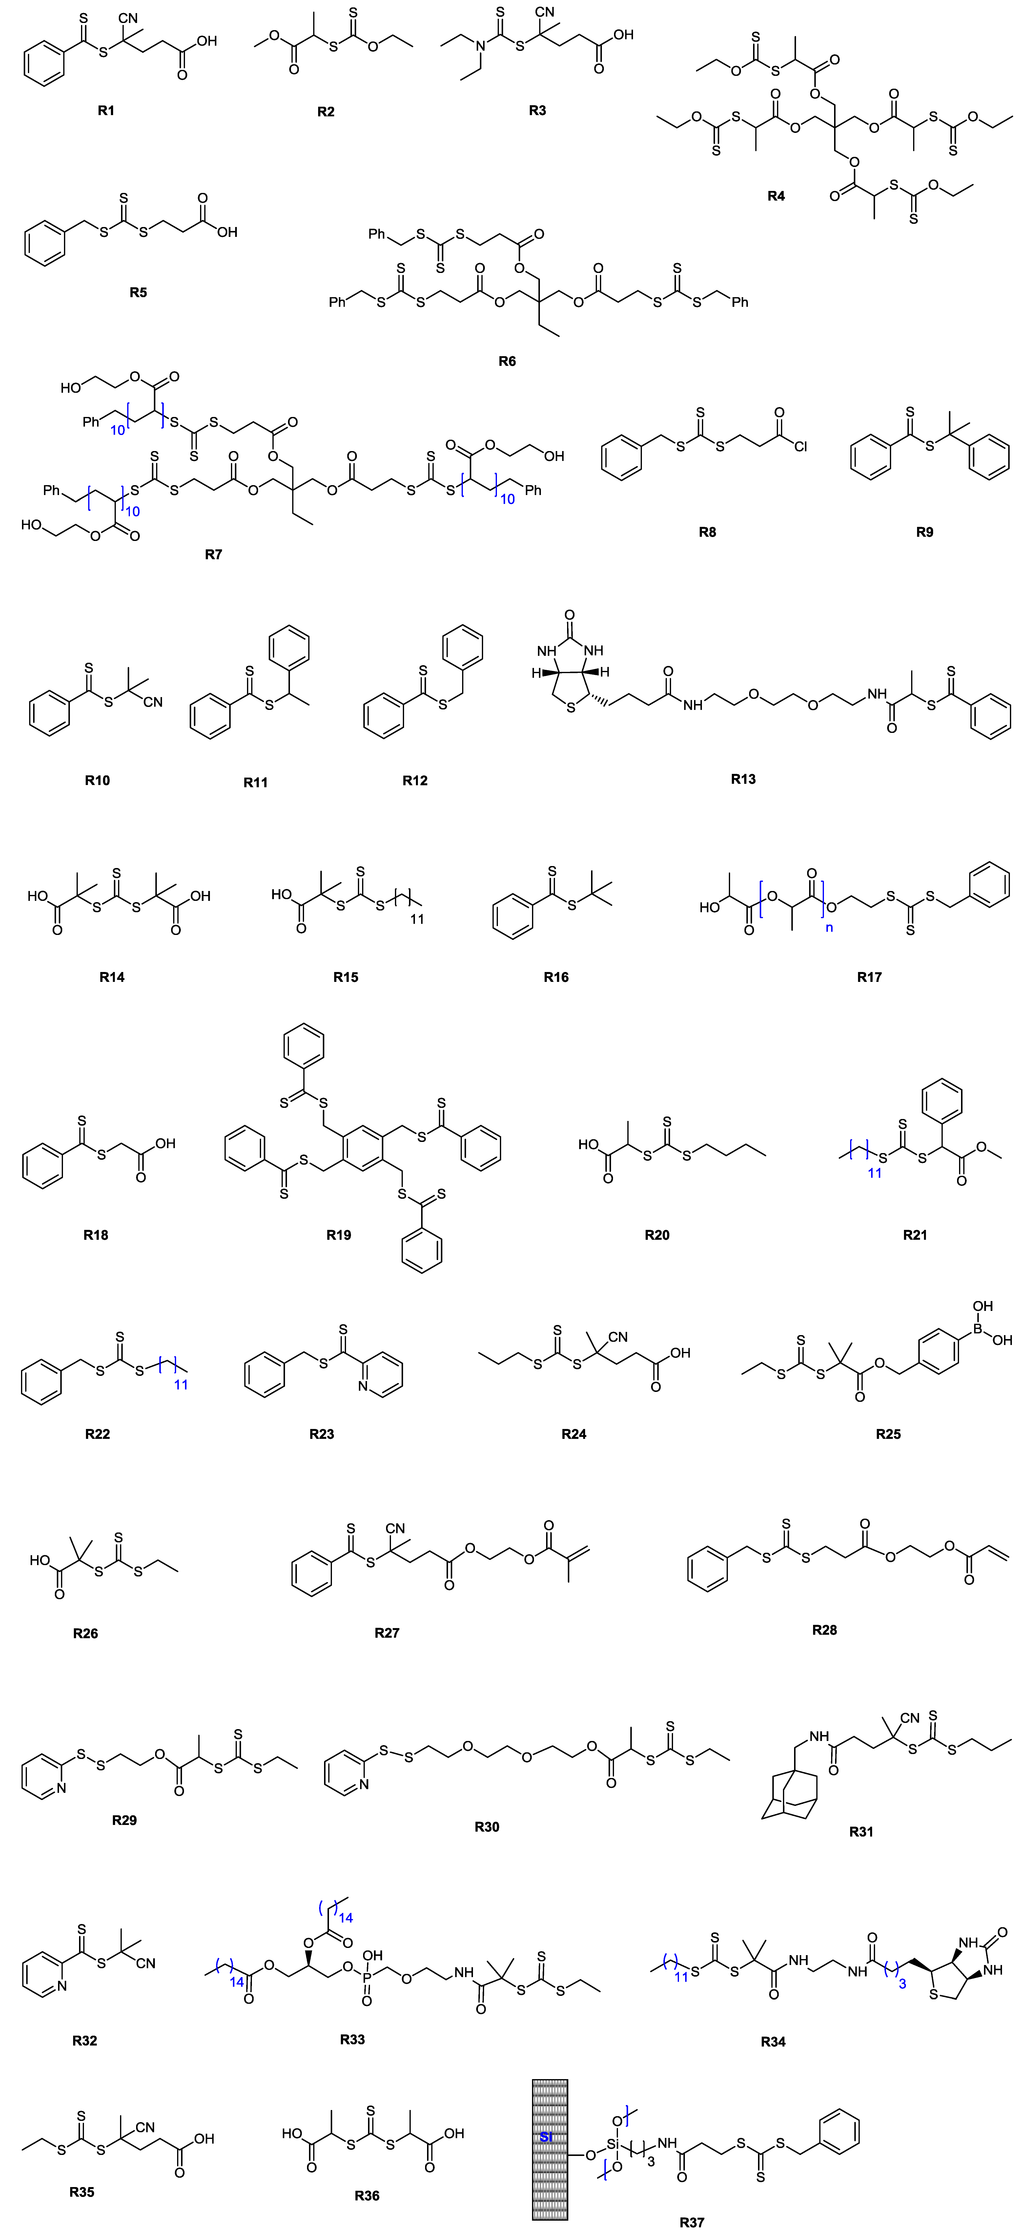 Polymers 05 00431 g020 1024